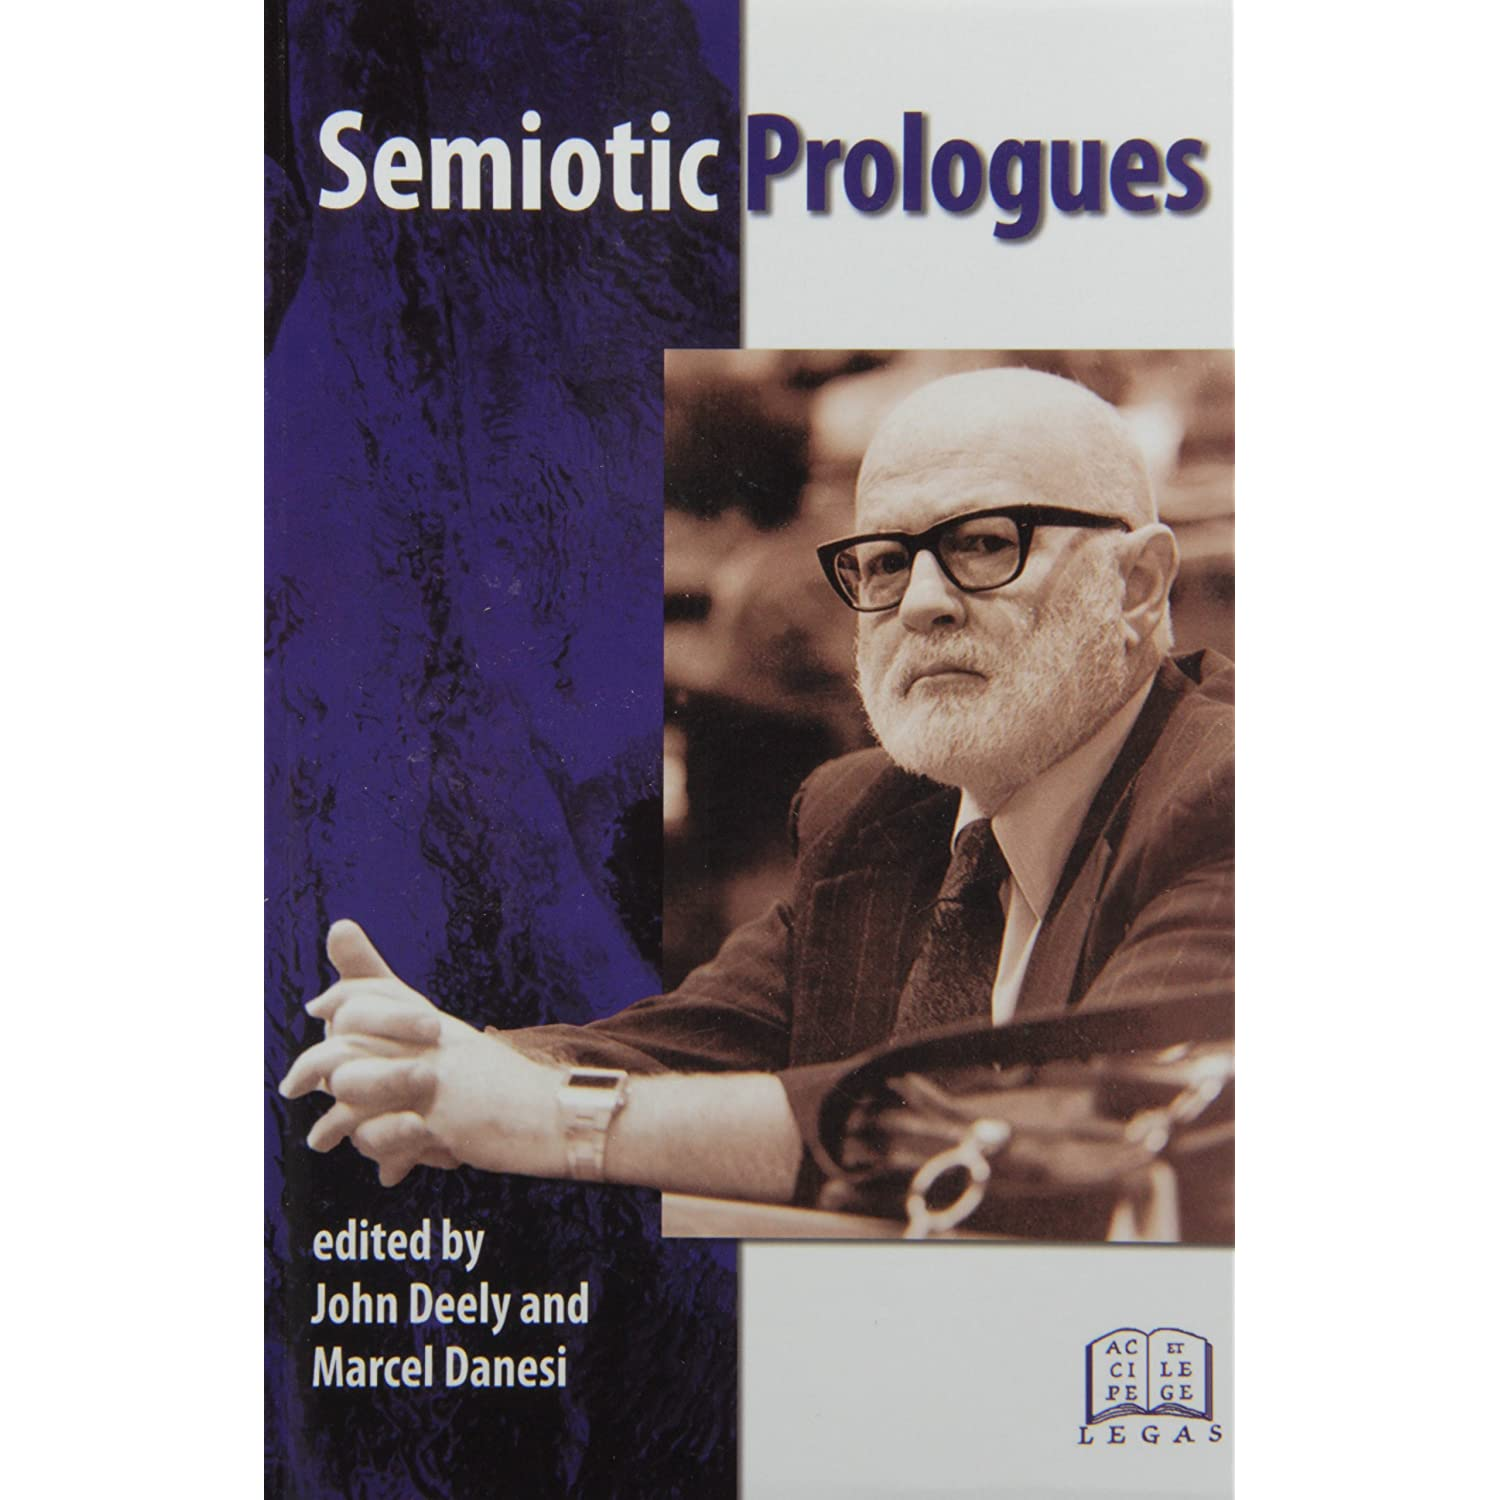 semiotic prologues